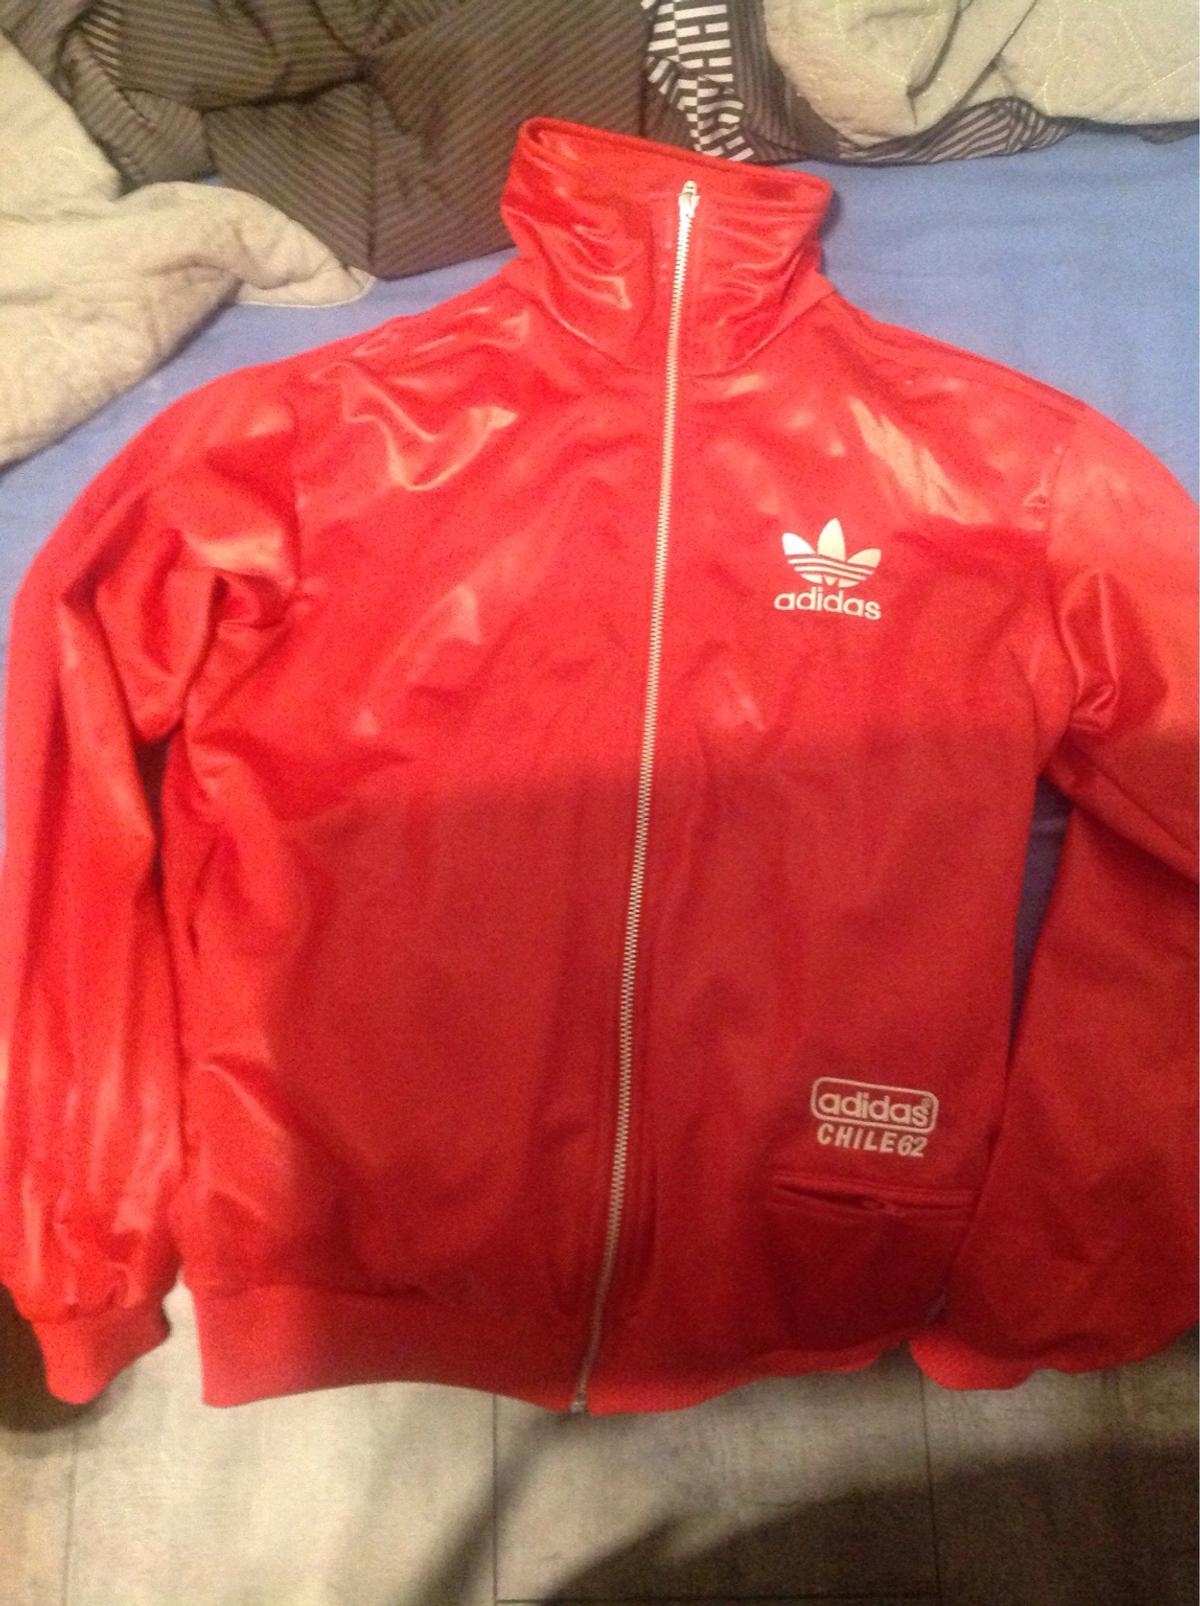 low price popular brand attractive price Adidas Chile 62 Trainingsjacke, rot (Gr. S)